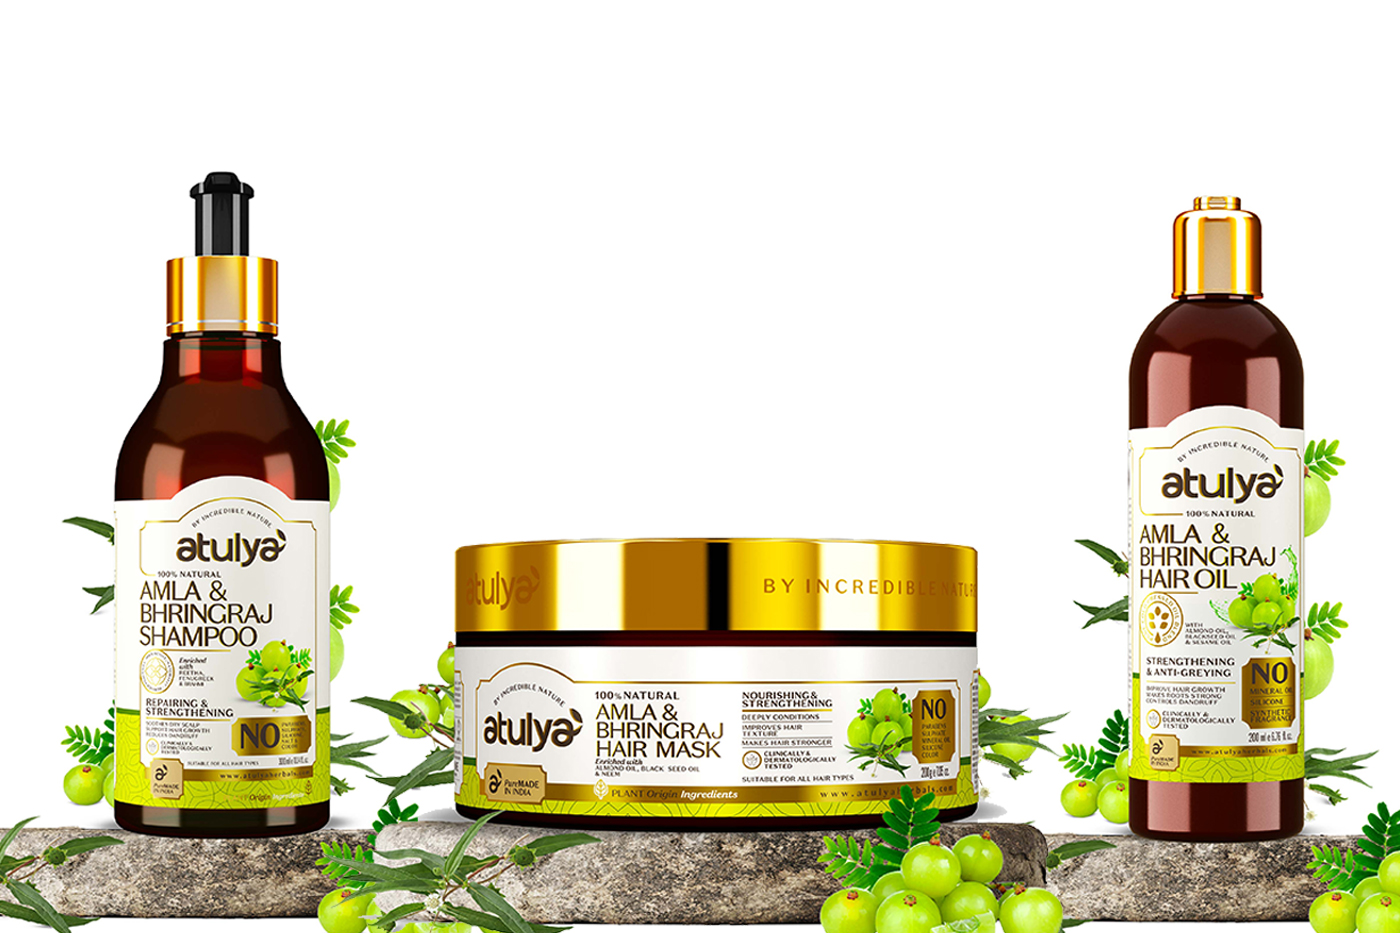 Atulya releases Amla Bhringraj haircare products